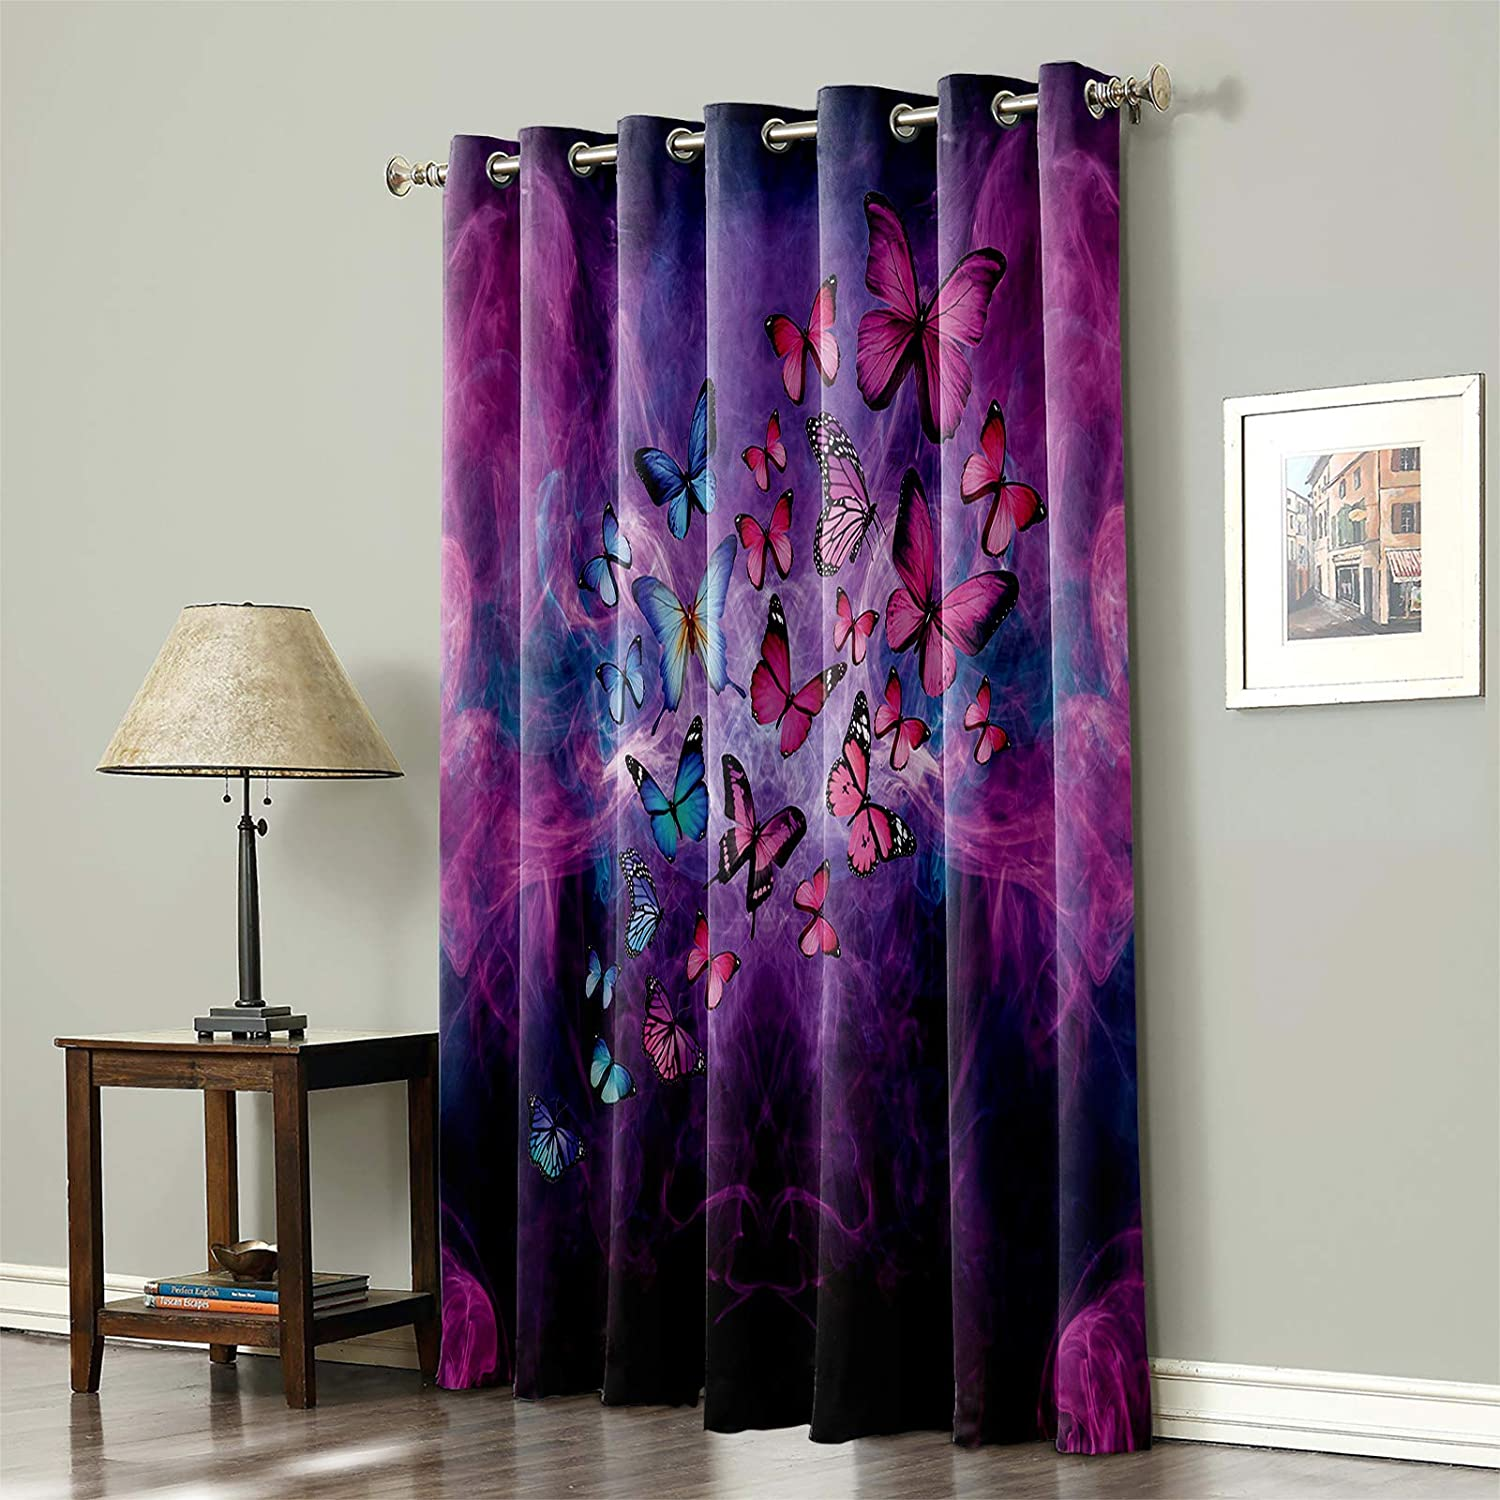 Libaoge Room Darkening Window Excellence Curtain Thermal Max 73% OFF Blackout Do Patio